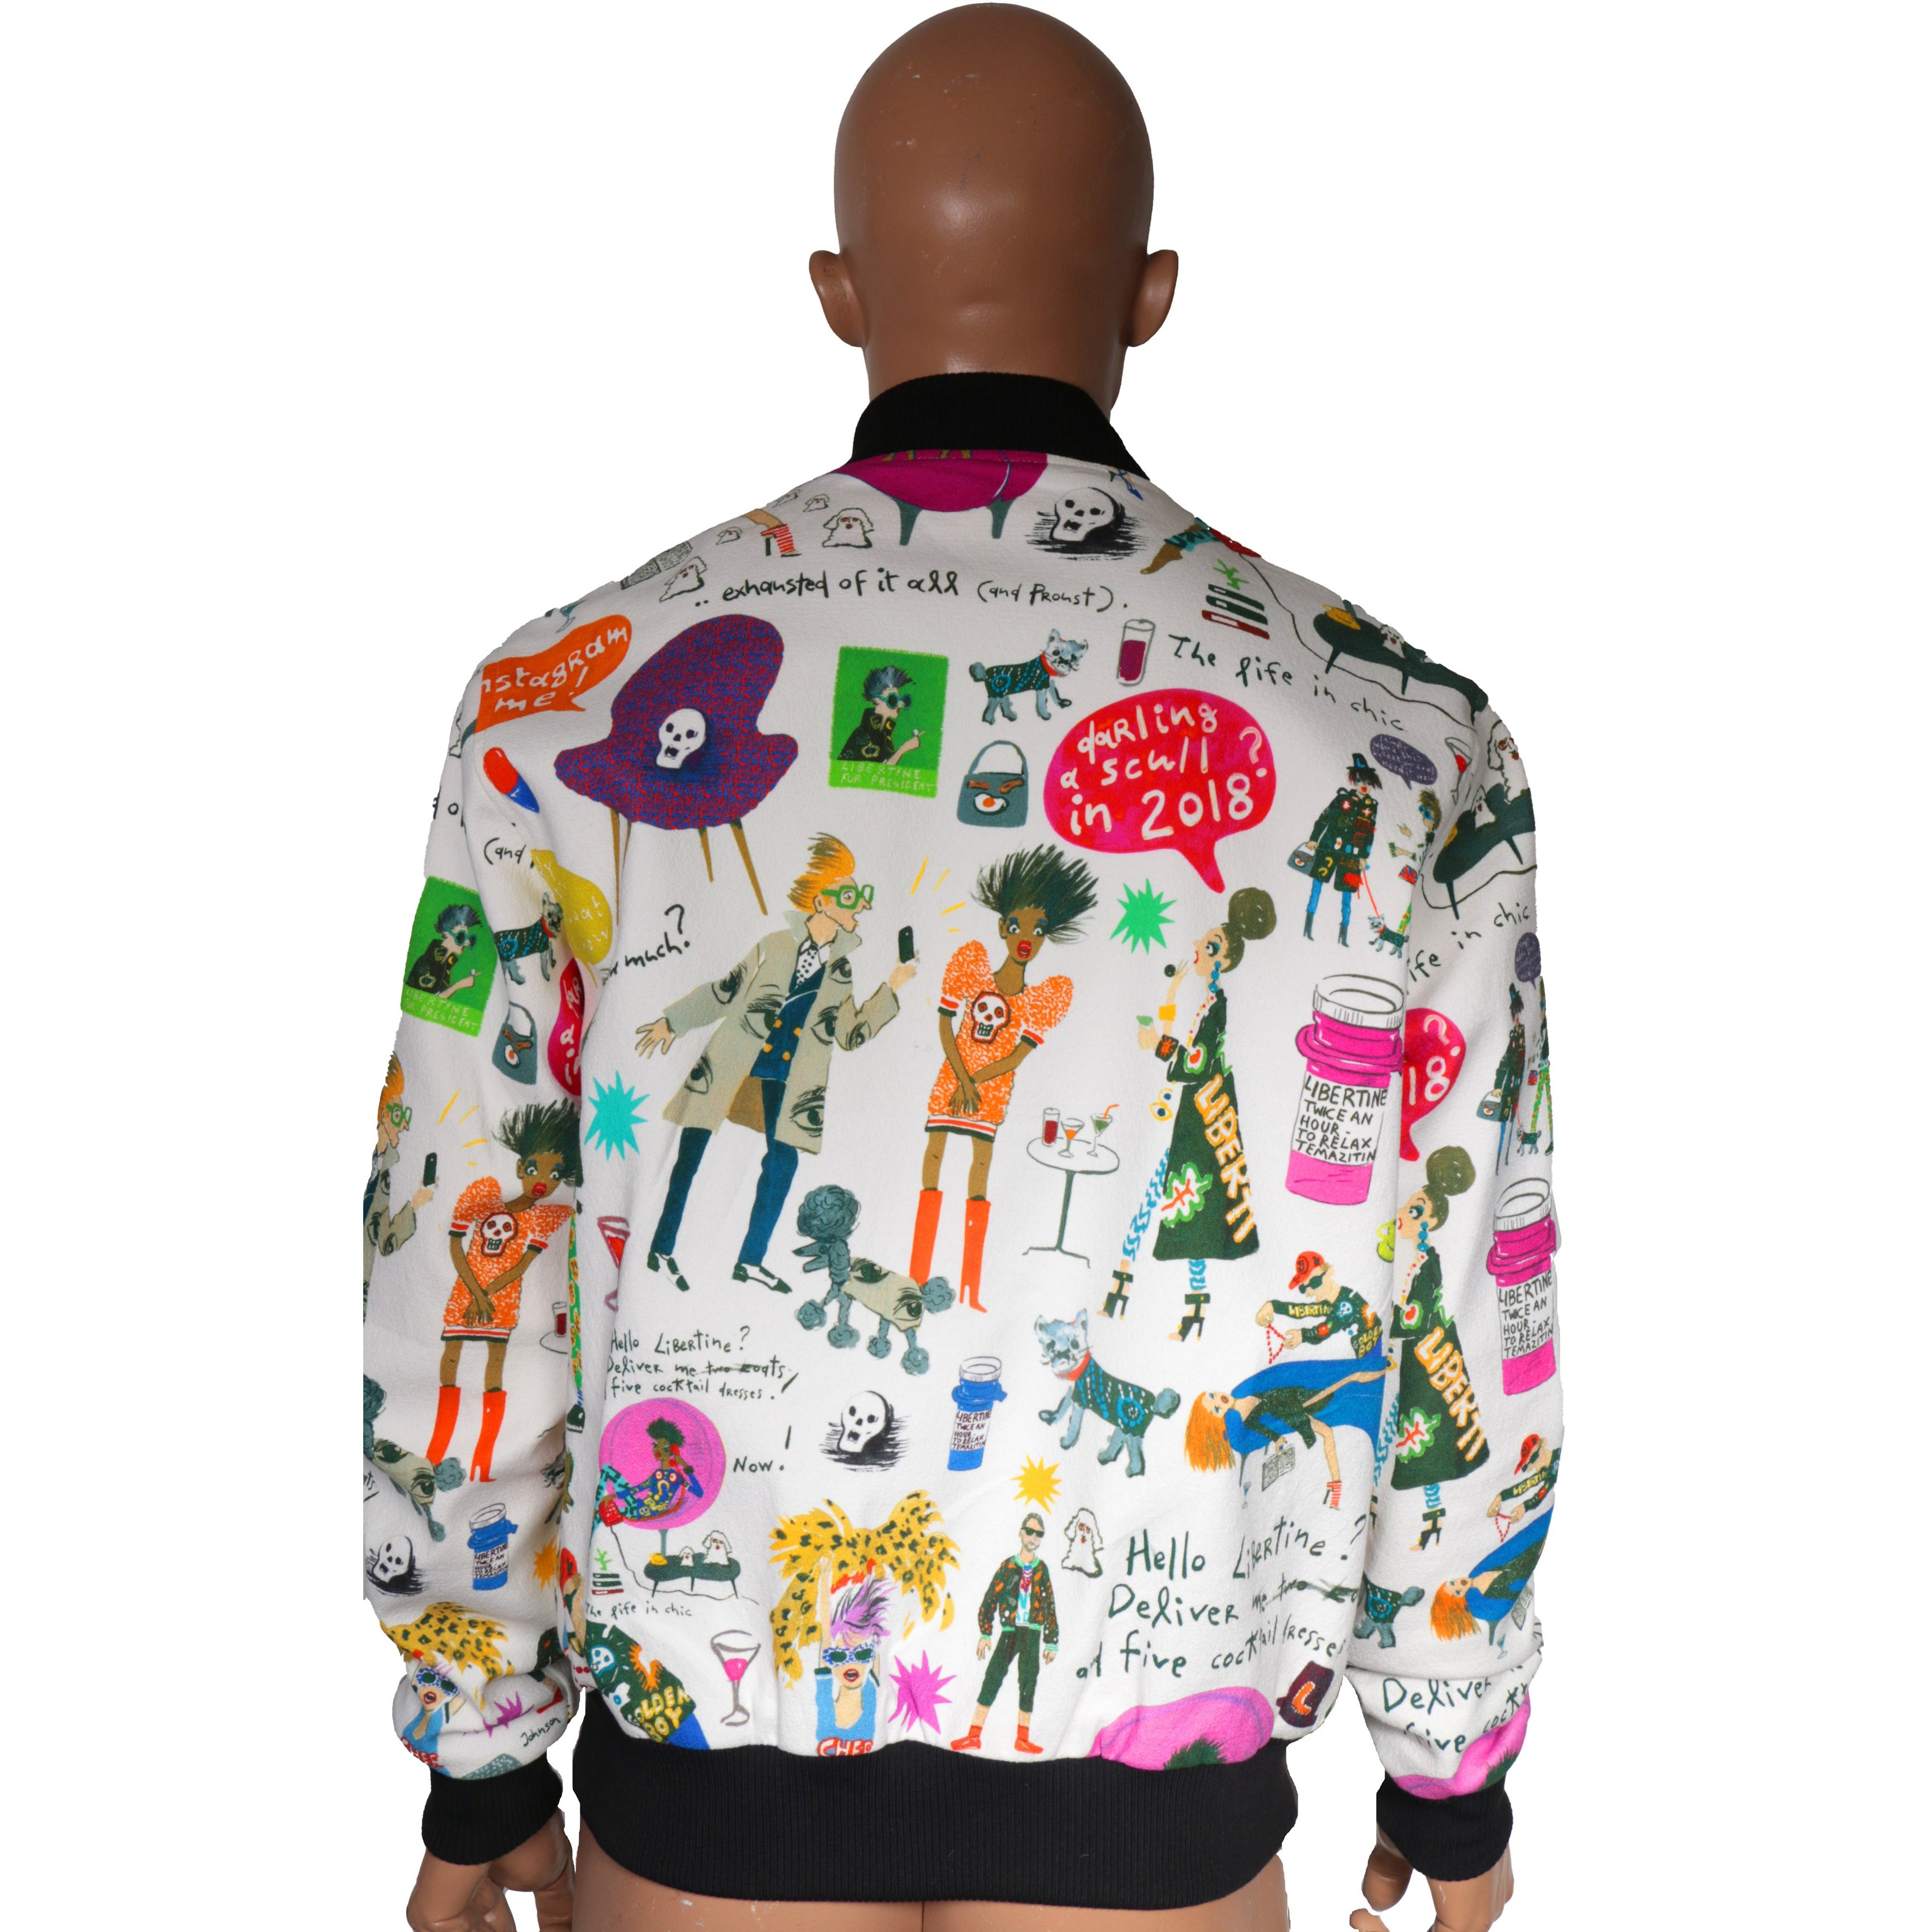 Bomber Jacket with Libertine prints